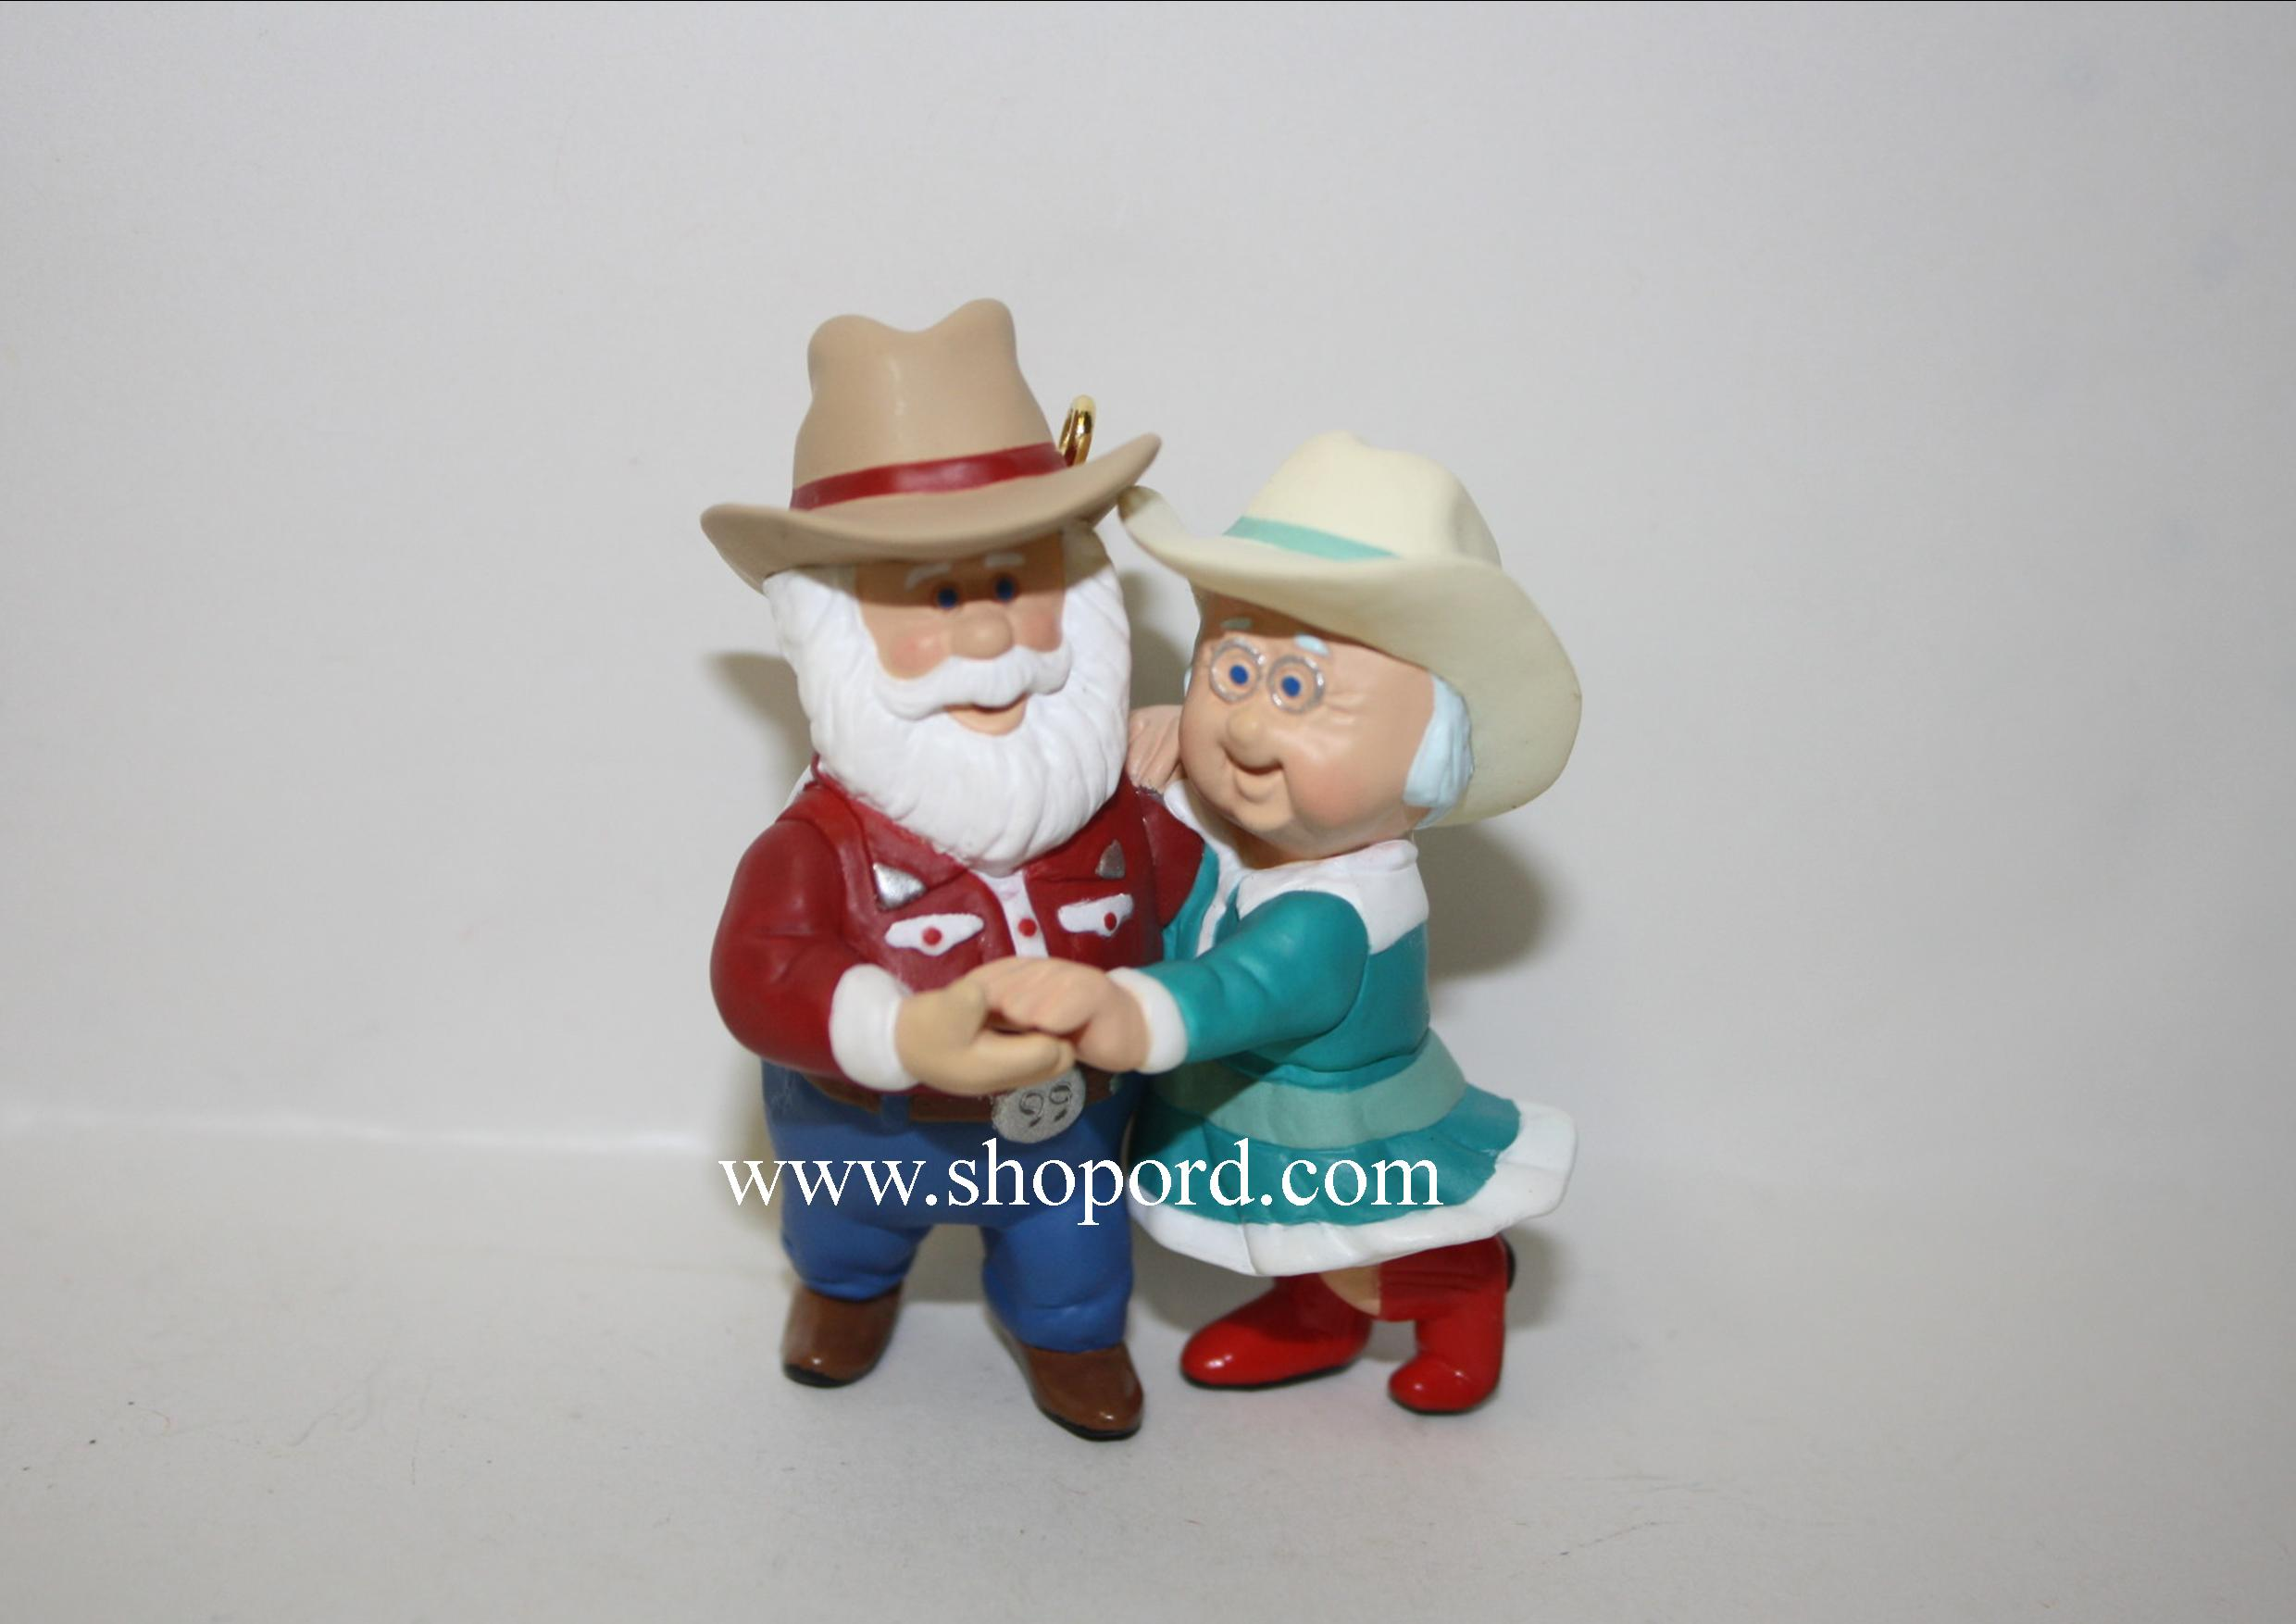 Hallmark 1999 The Clauses On Vacation Ornament QX6399